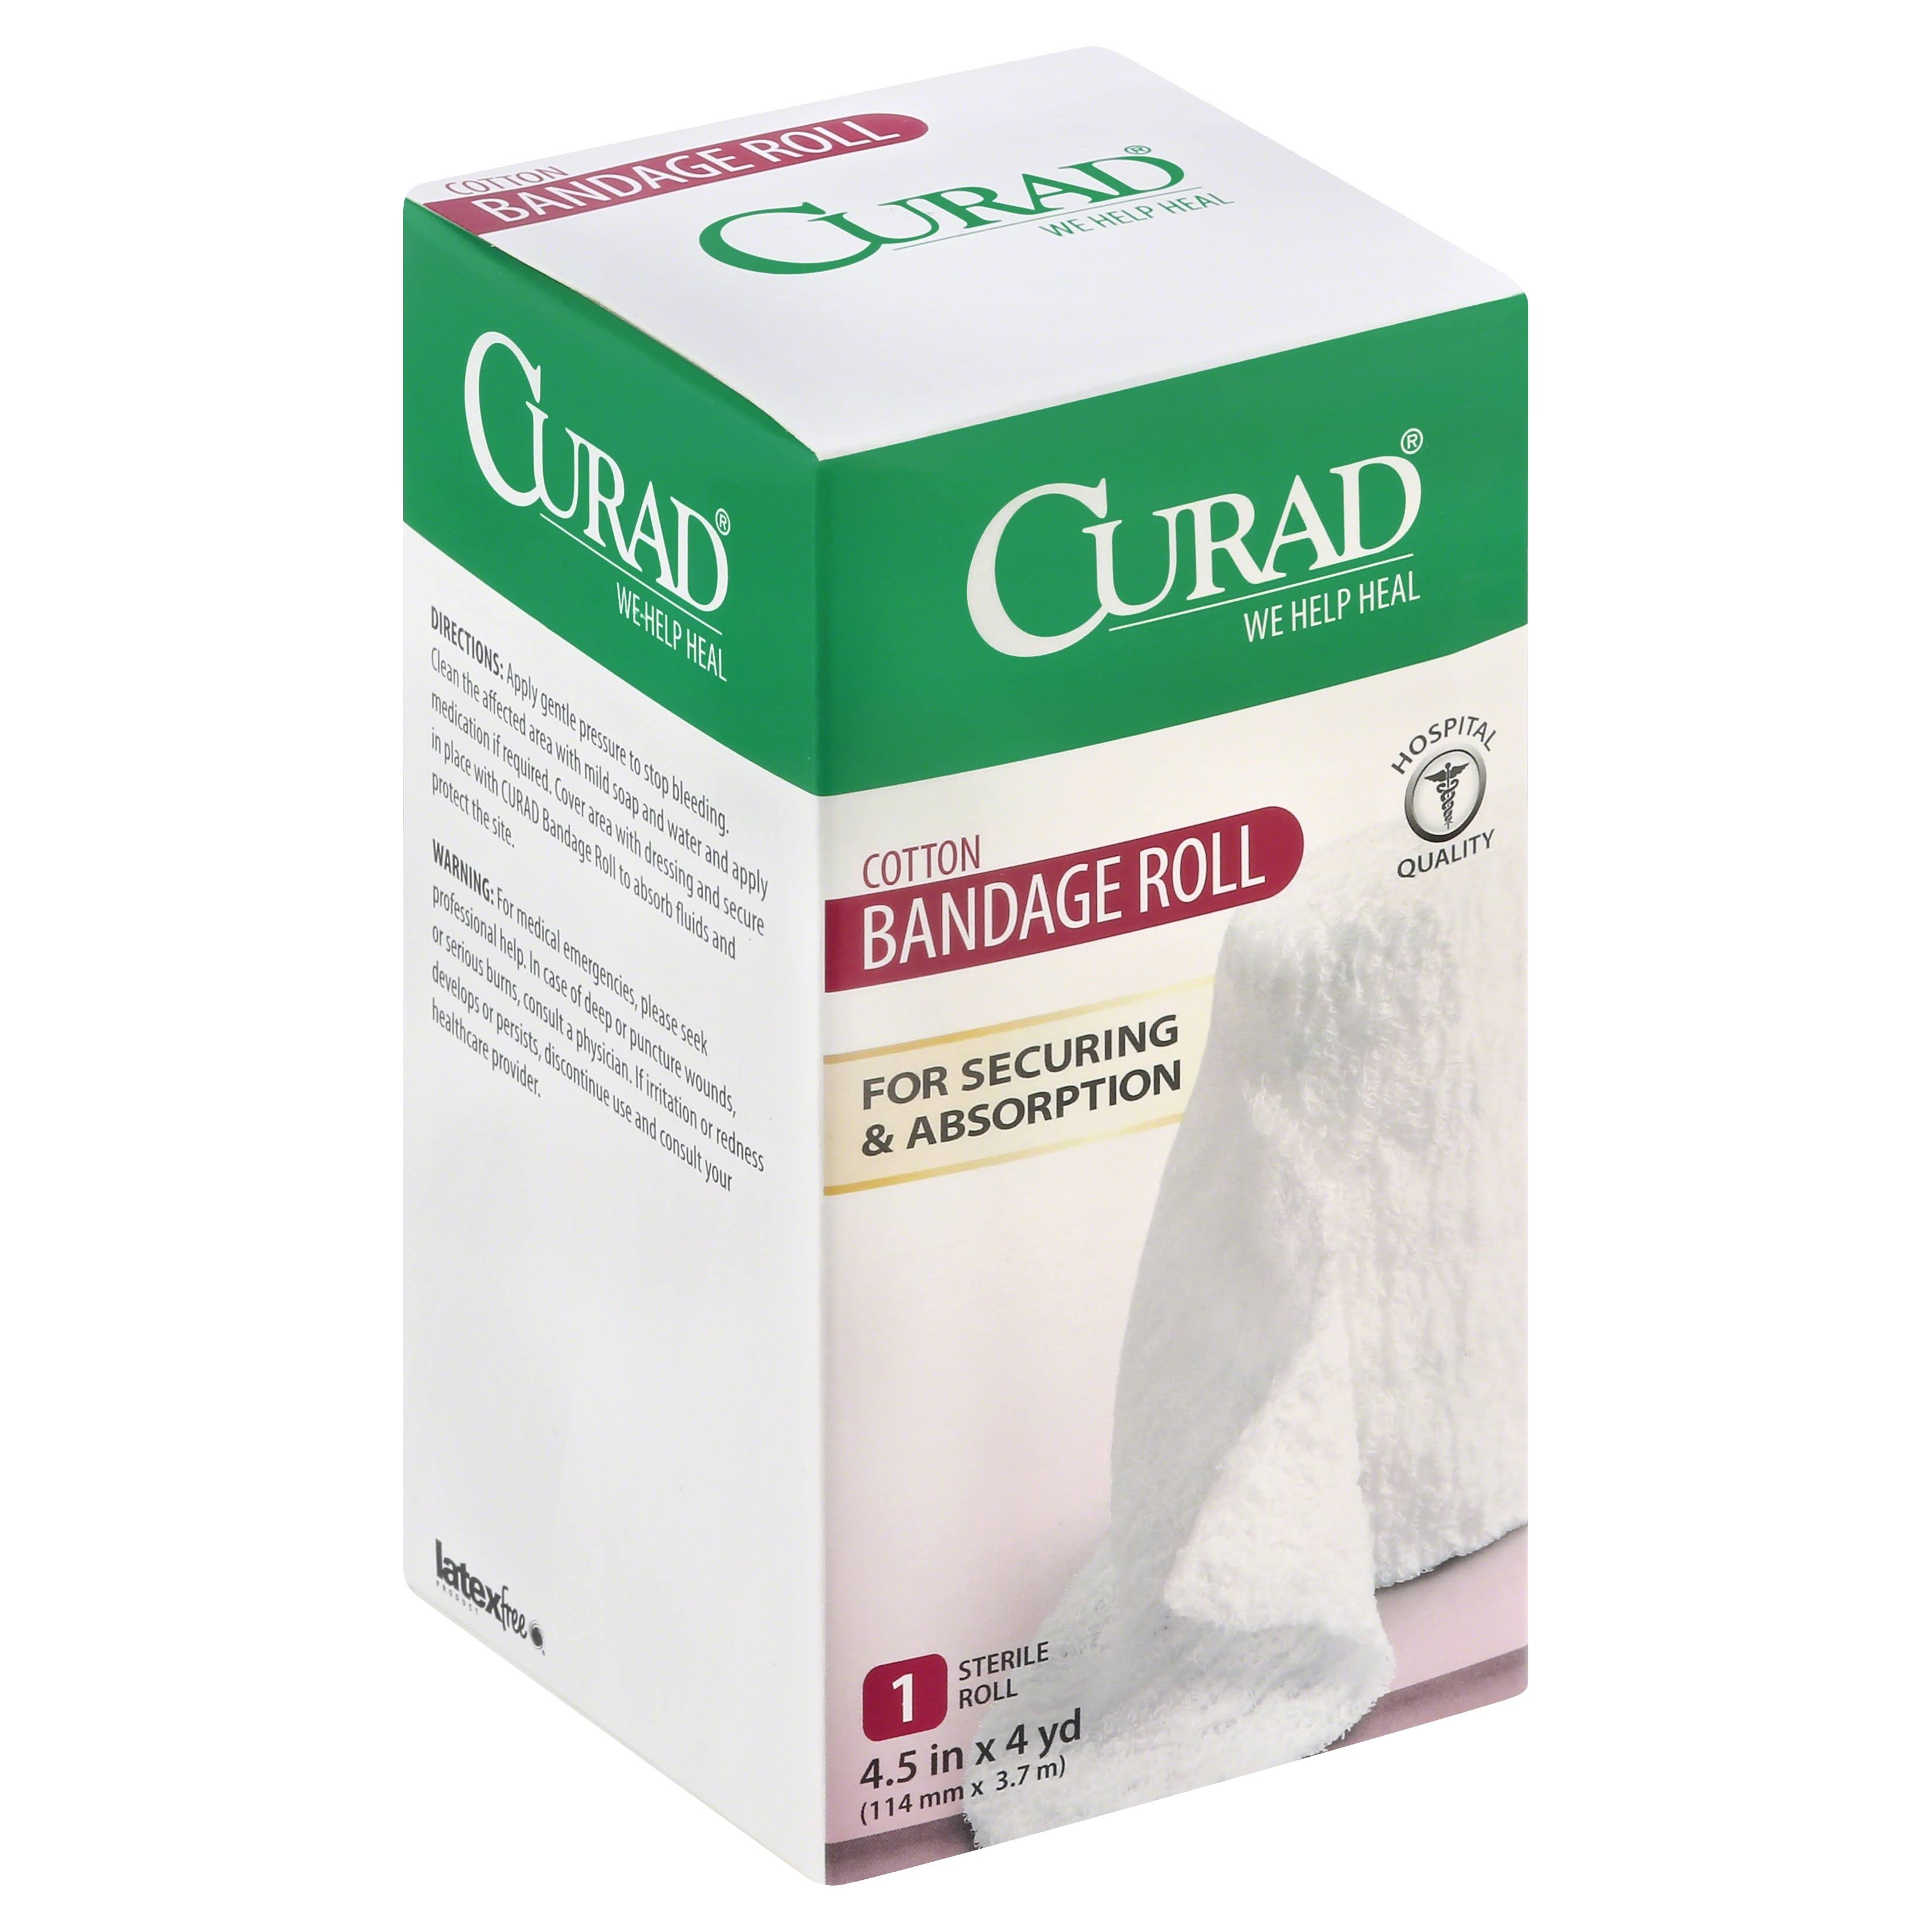 Curad Cotton Bandage Roll - 114mm x 3.7m